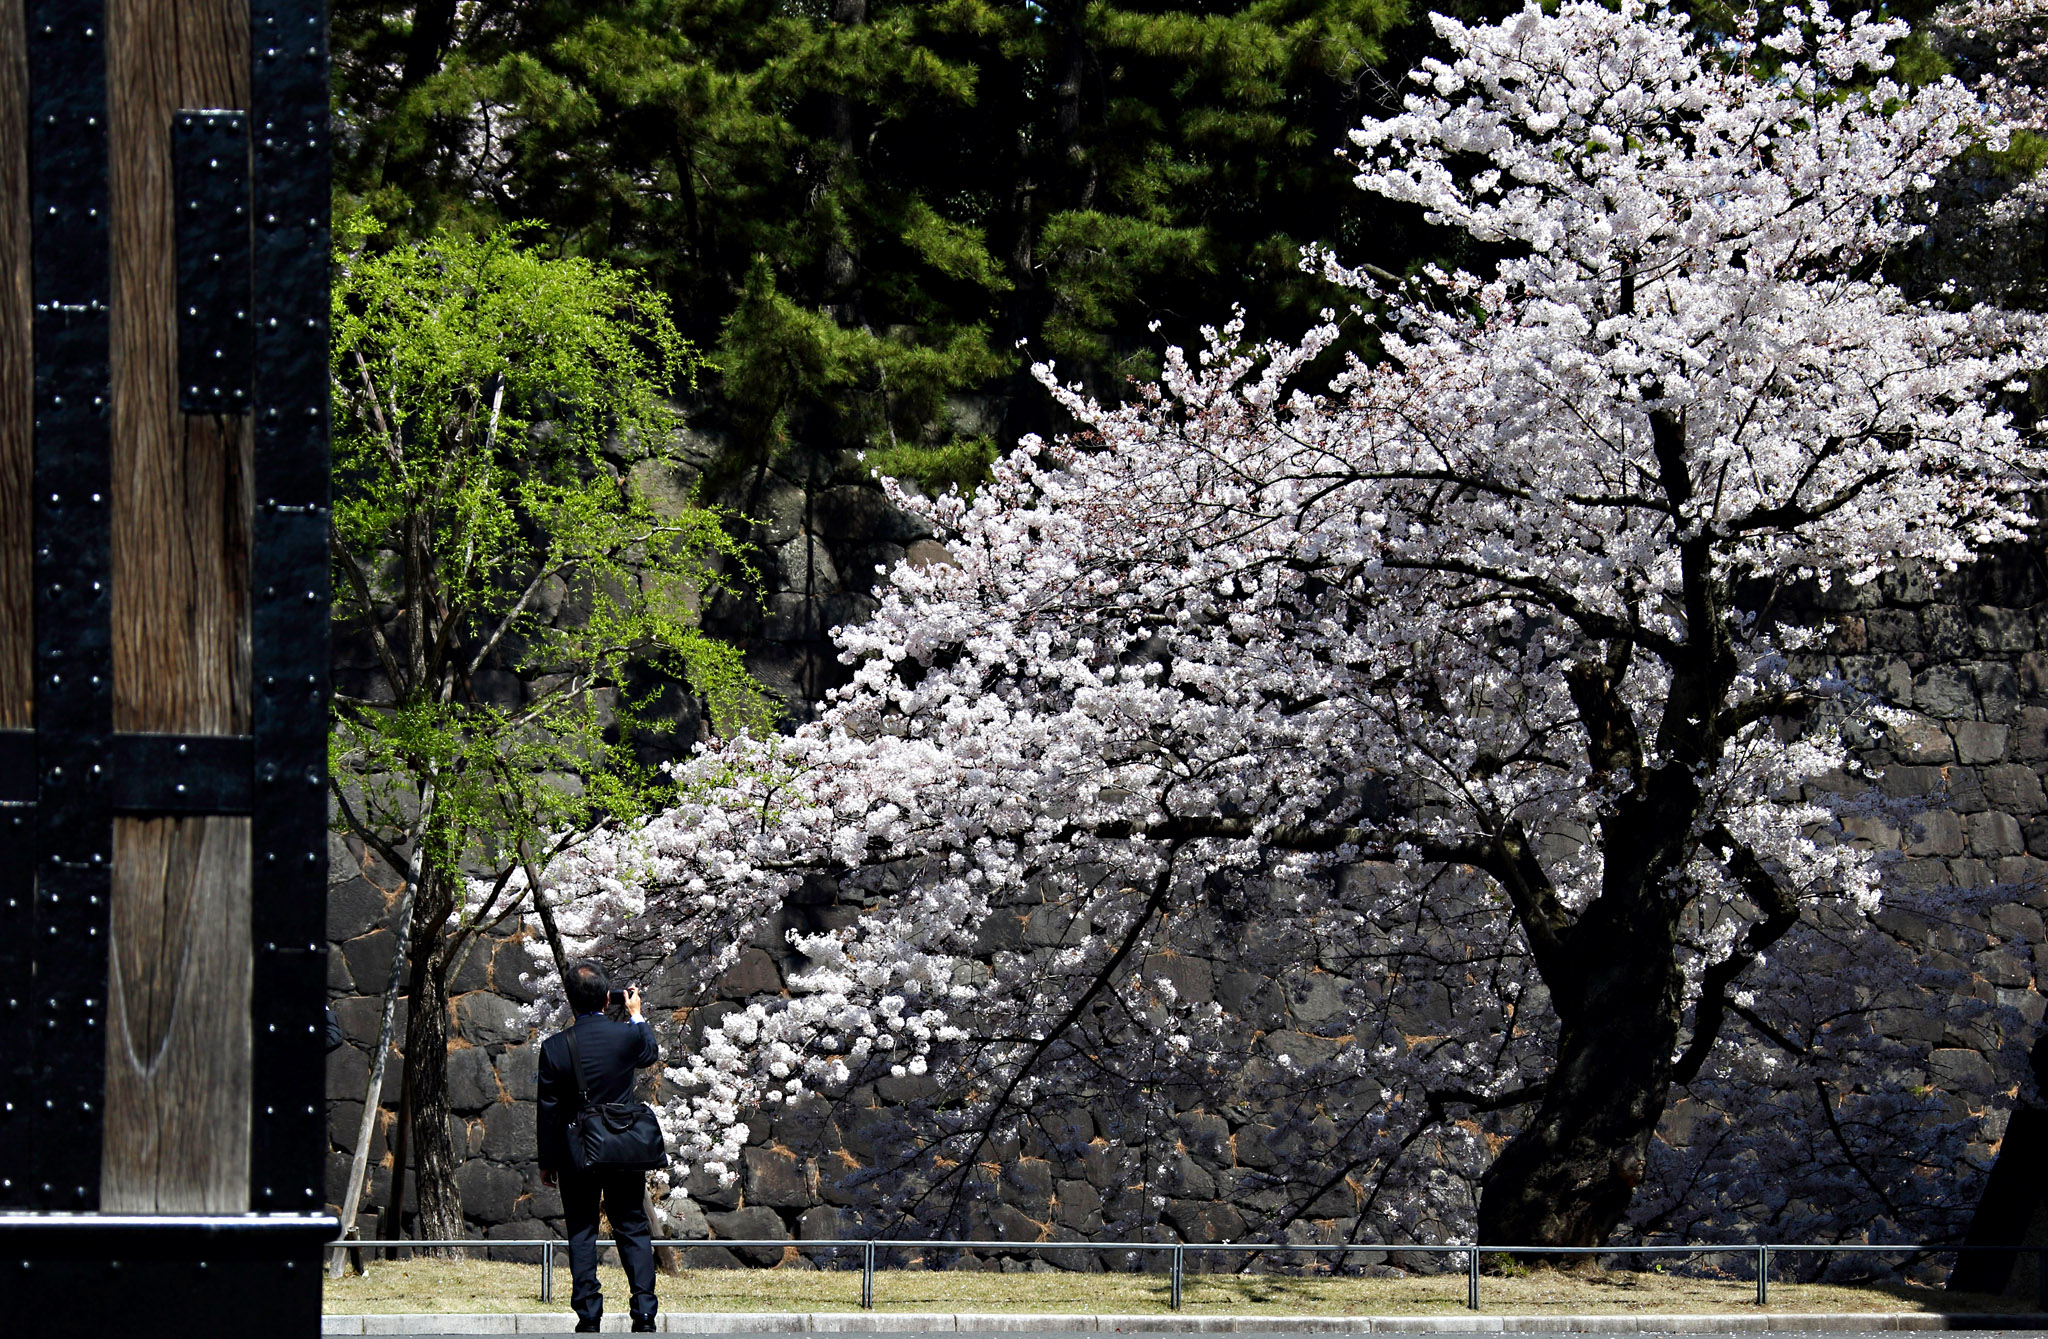 A man takes a photograph of a cherry tree in blossom in Tokyo, Japan, on Tuesday, March 31, 2015. Japan's emergence from recession was weaker than first estimated as companies unexpectedly cut investment and drew down their inventories, offsetting a pickup in consumer spending. Photographer: Tomohiro Ohsumi/Bloomberg